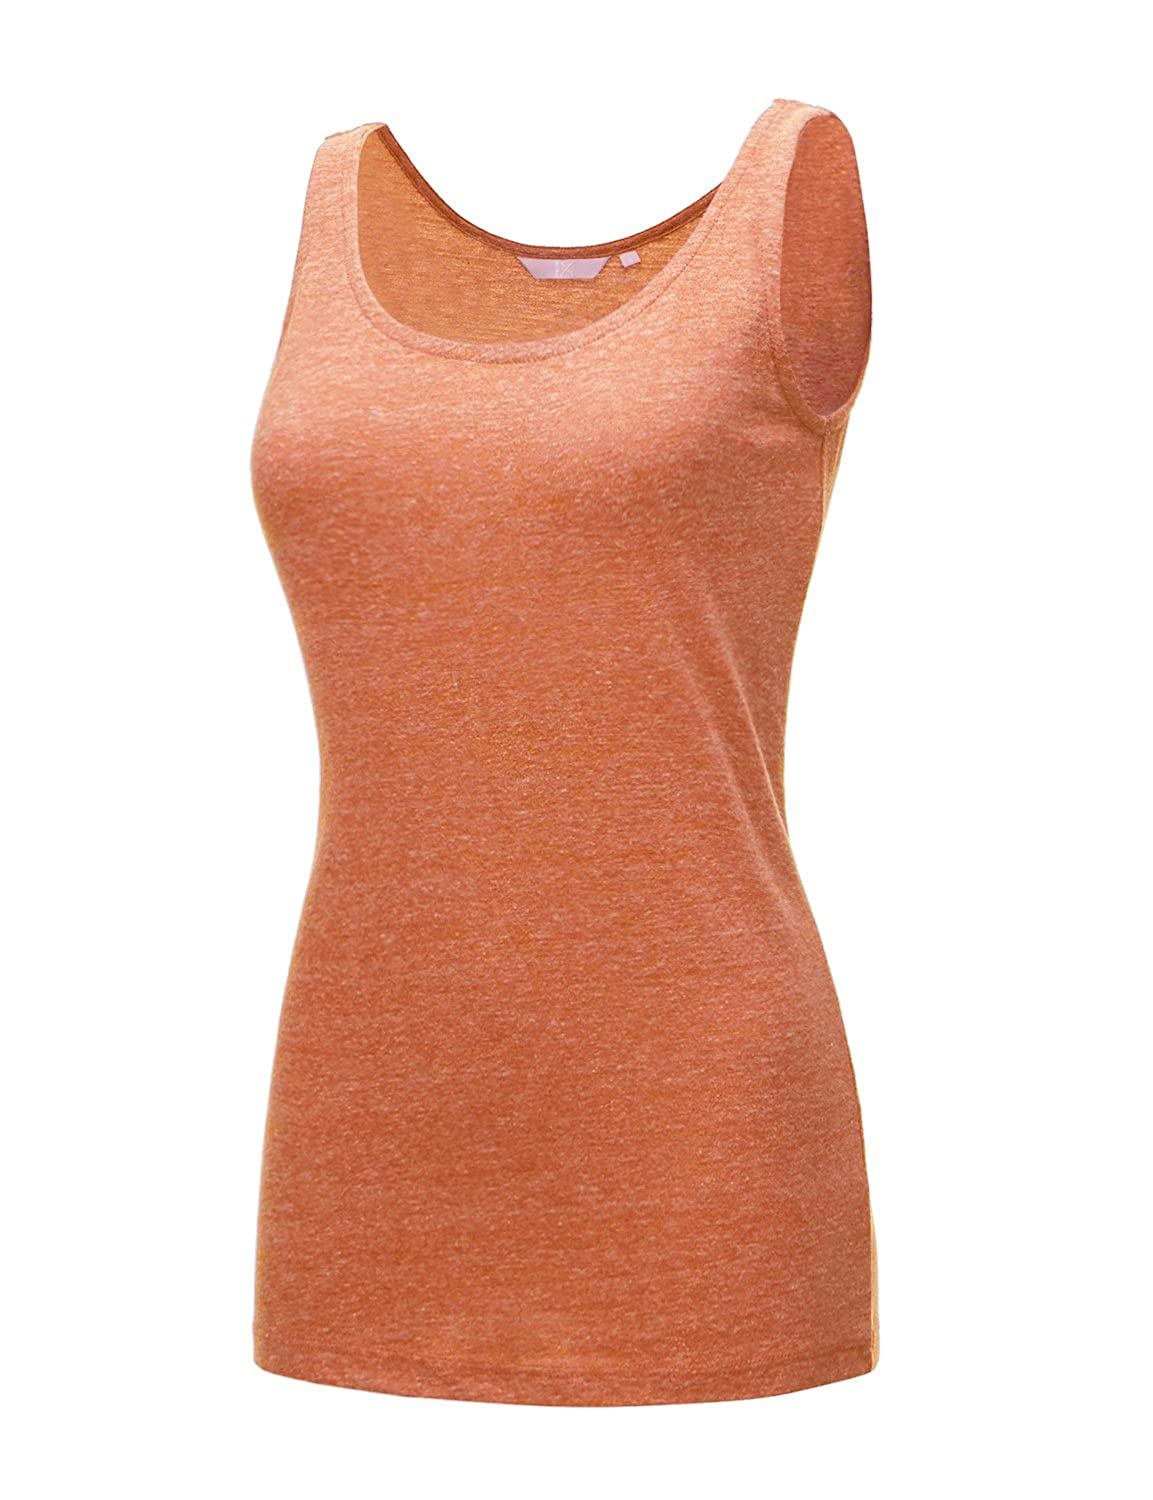 17507_orange Regna X [RESTOCK Activewear Running Workouts Clothes Yoga Racerback Tank Tops for Women